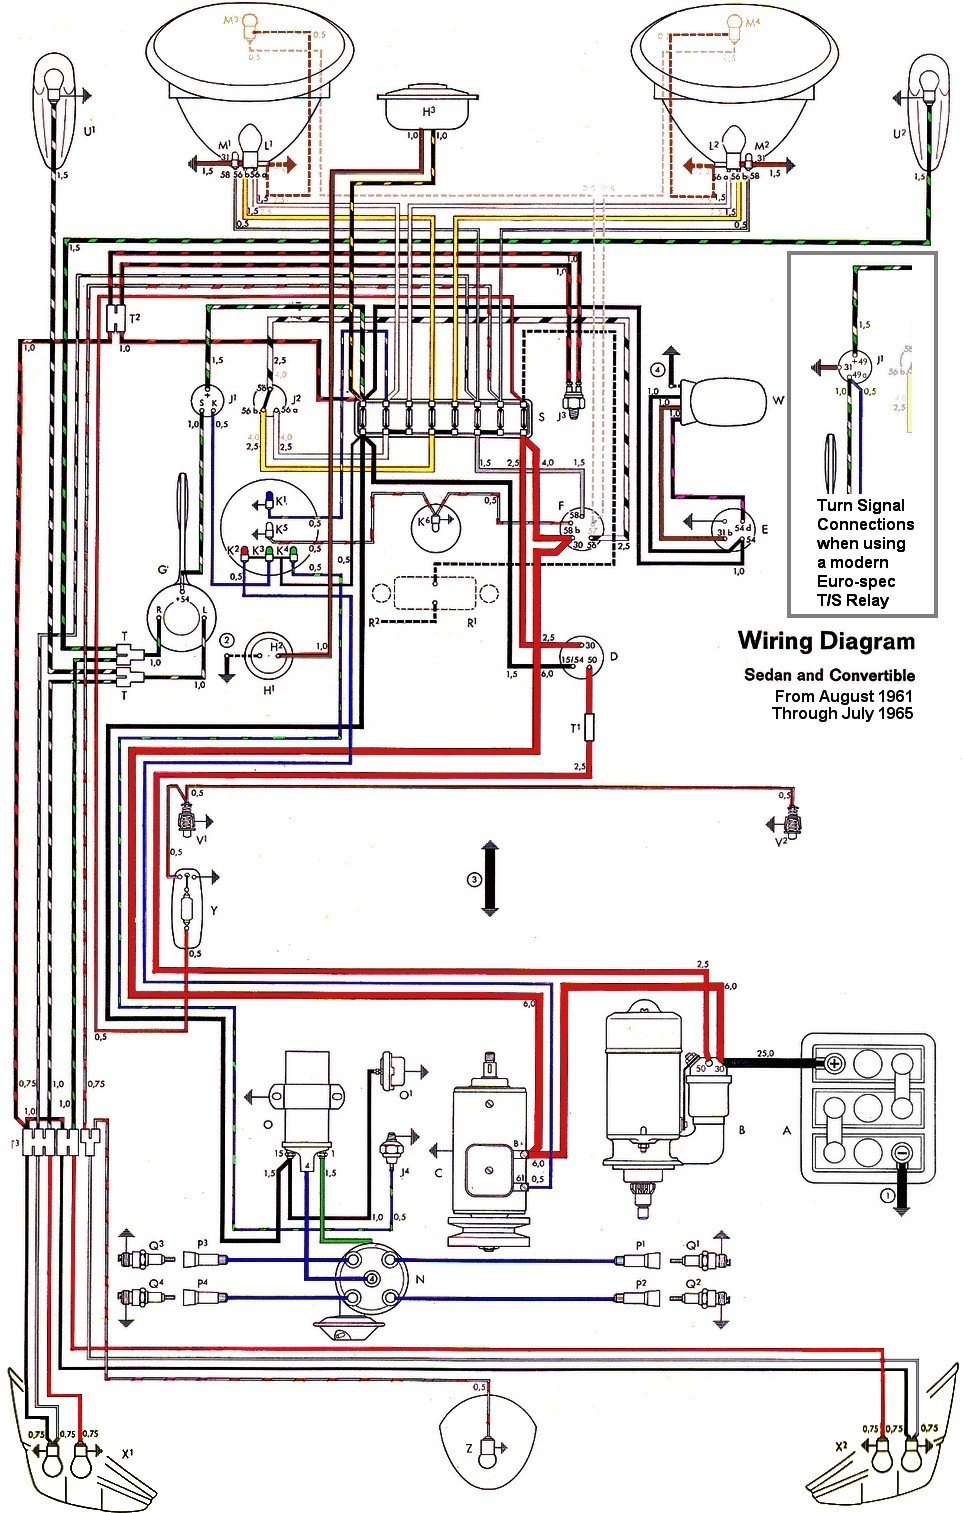 bug_62 65withinset thesamba com type 1 wiring diagrams vw bug wiring diagram at bayanpartner.co